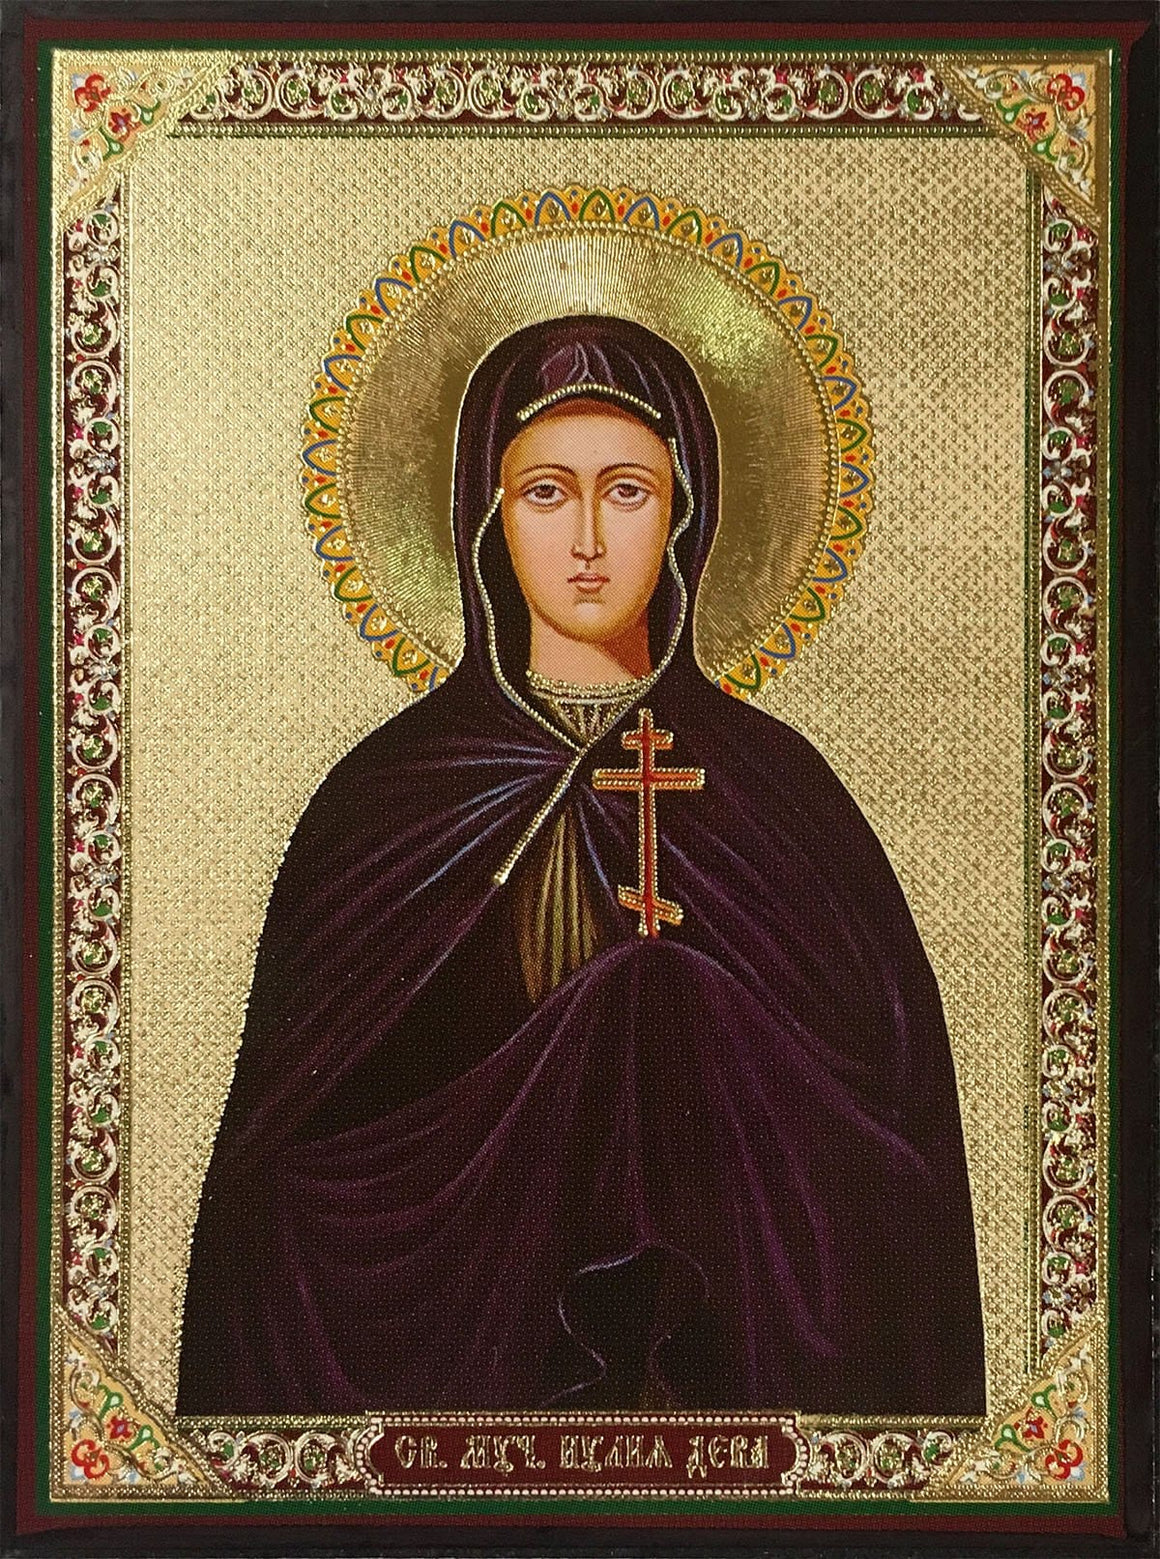 St. Julia the Virginmartyr of Ancyra Icon (Yulia)